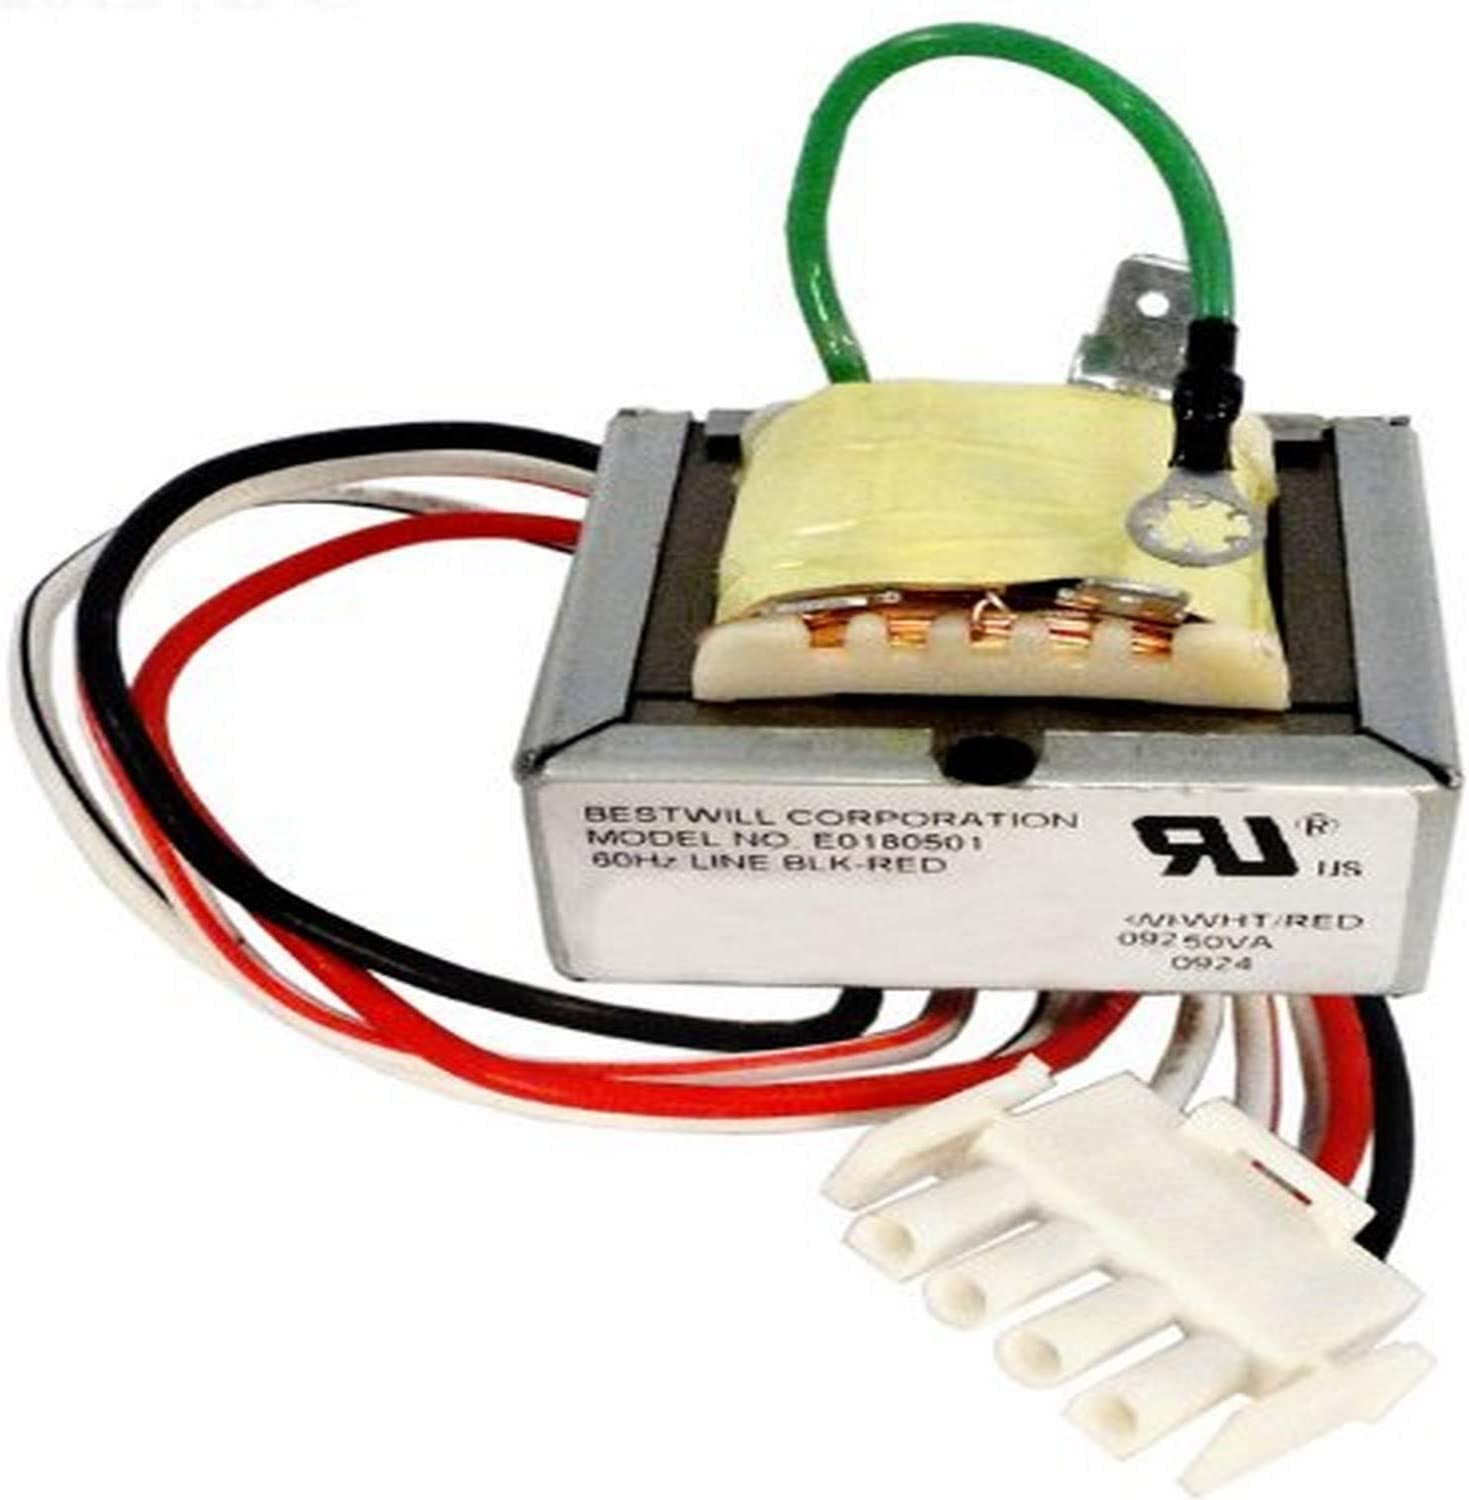 Zodiac R0061100 115/230-Volt Transformer Replacement Kit for Select Zodiac Jandy Pool Heaters